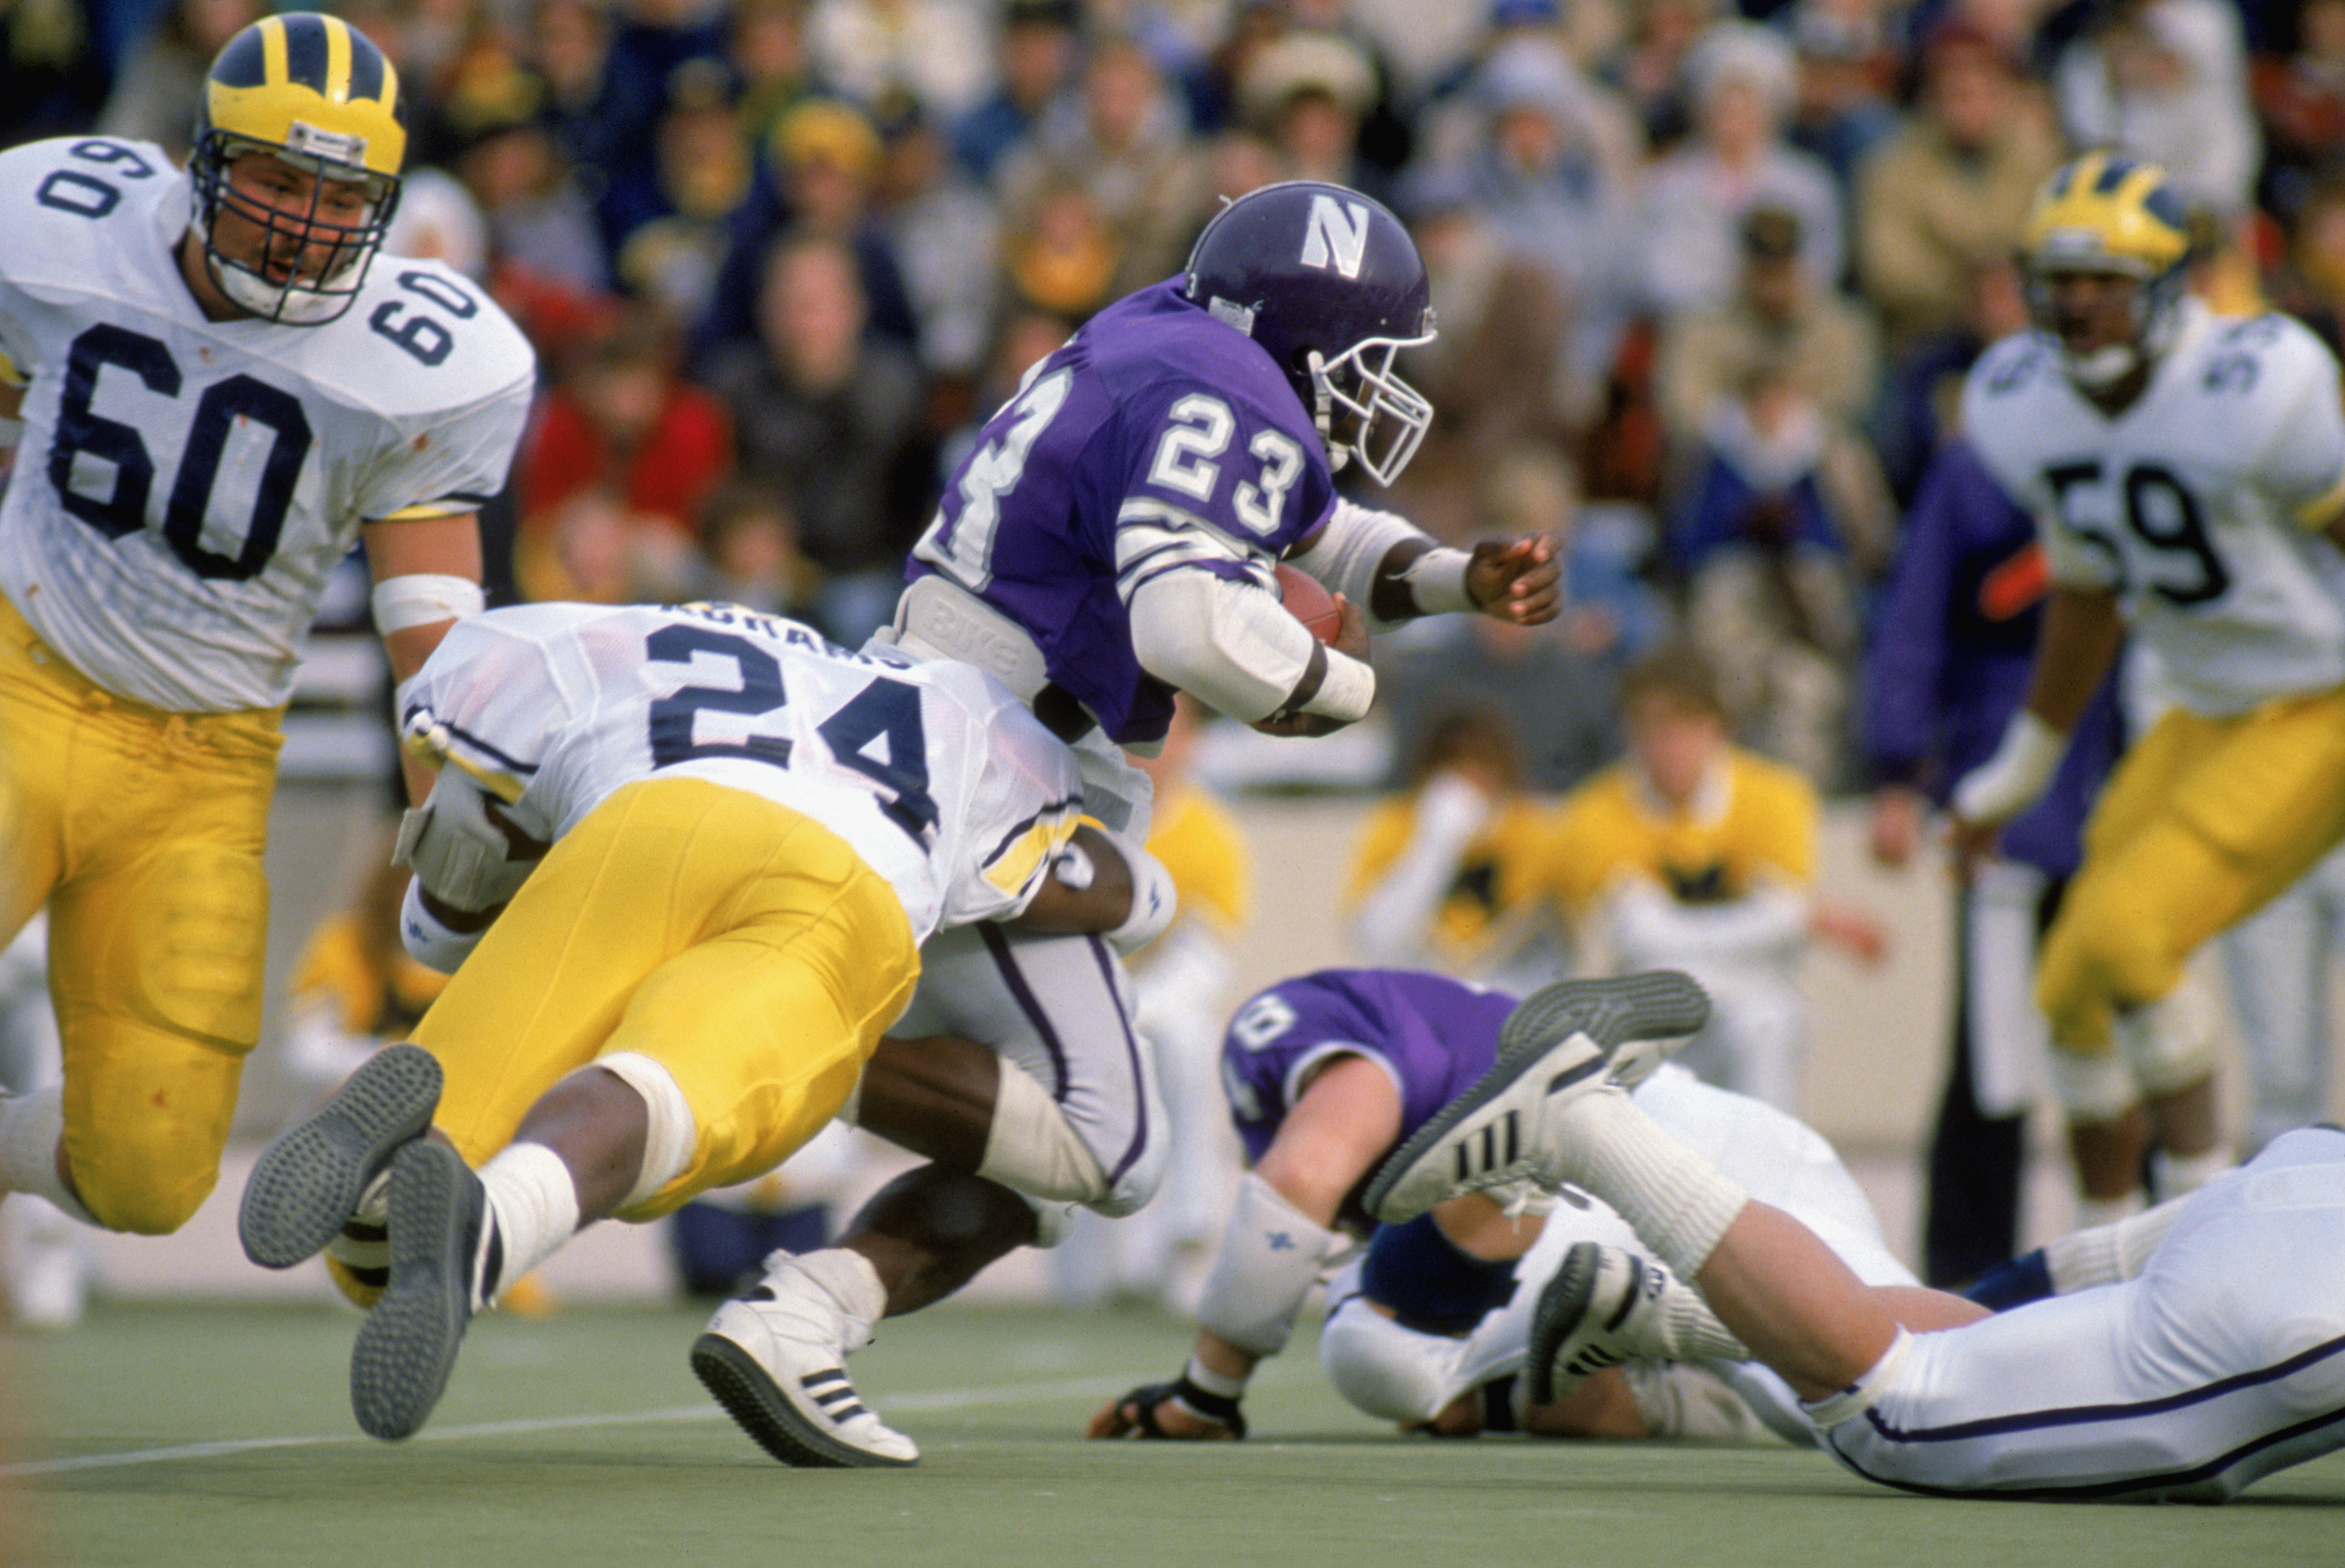 1988:  Byron Sanders #23 of Northwestern University Wildcats carries the ball during a game against the University of Michigan Wolverines in the 1988 season. (Photo by: Jonathan Daniel/Getty Images)